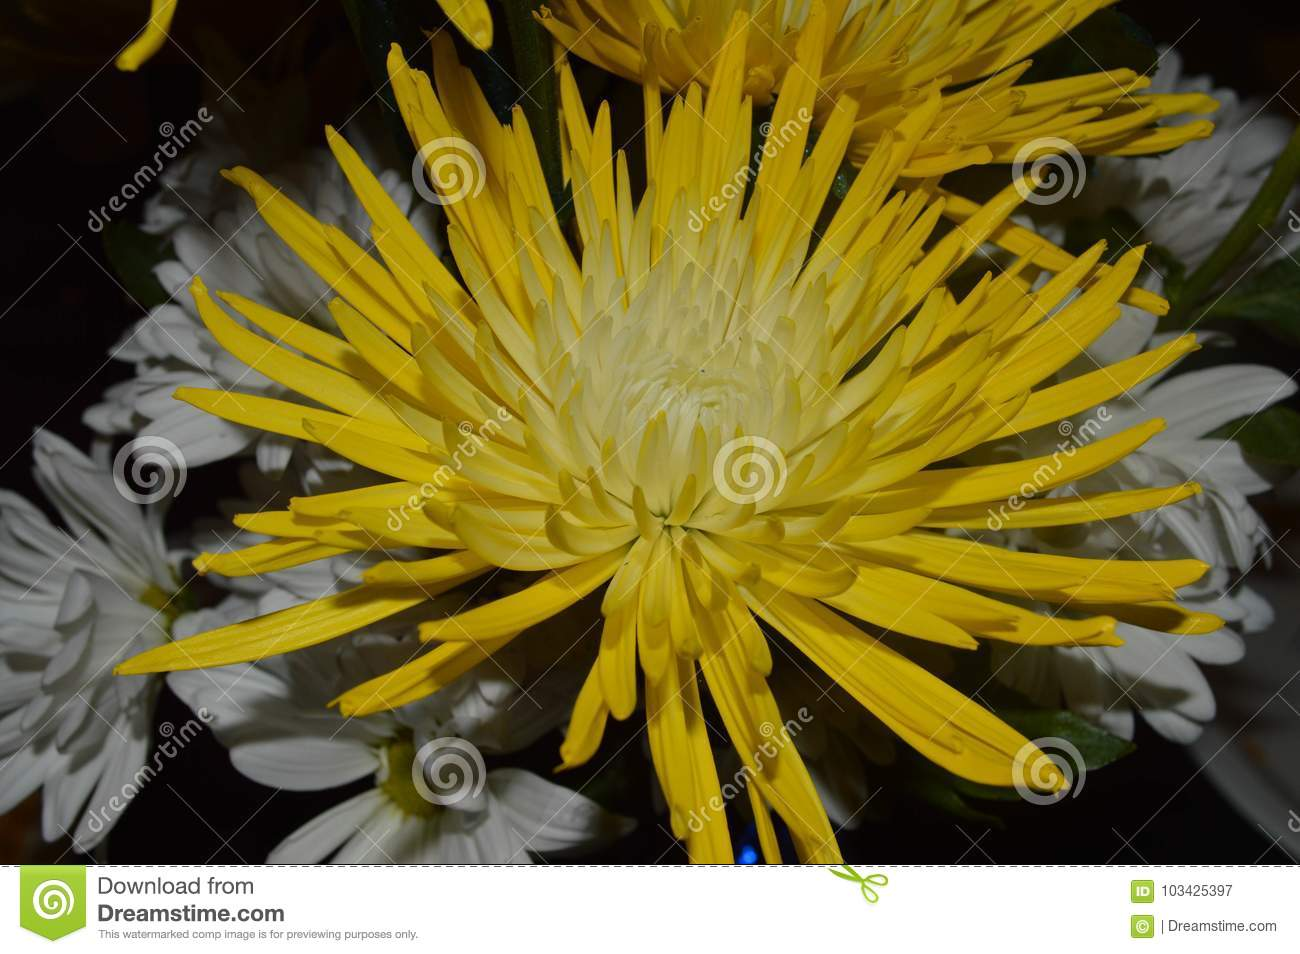 Close Up Of A Yellow Chrysanthemum Spider Flower For A Wedding Stock